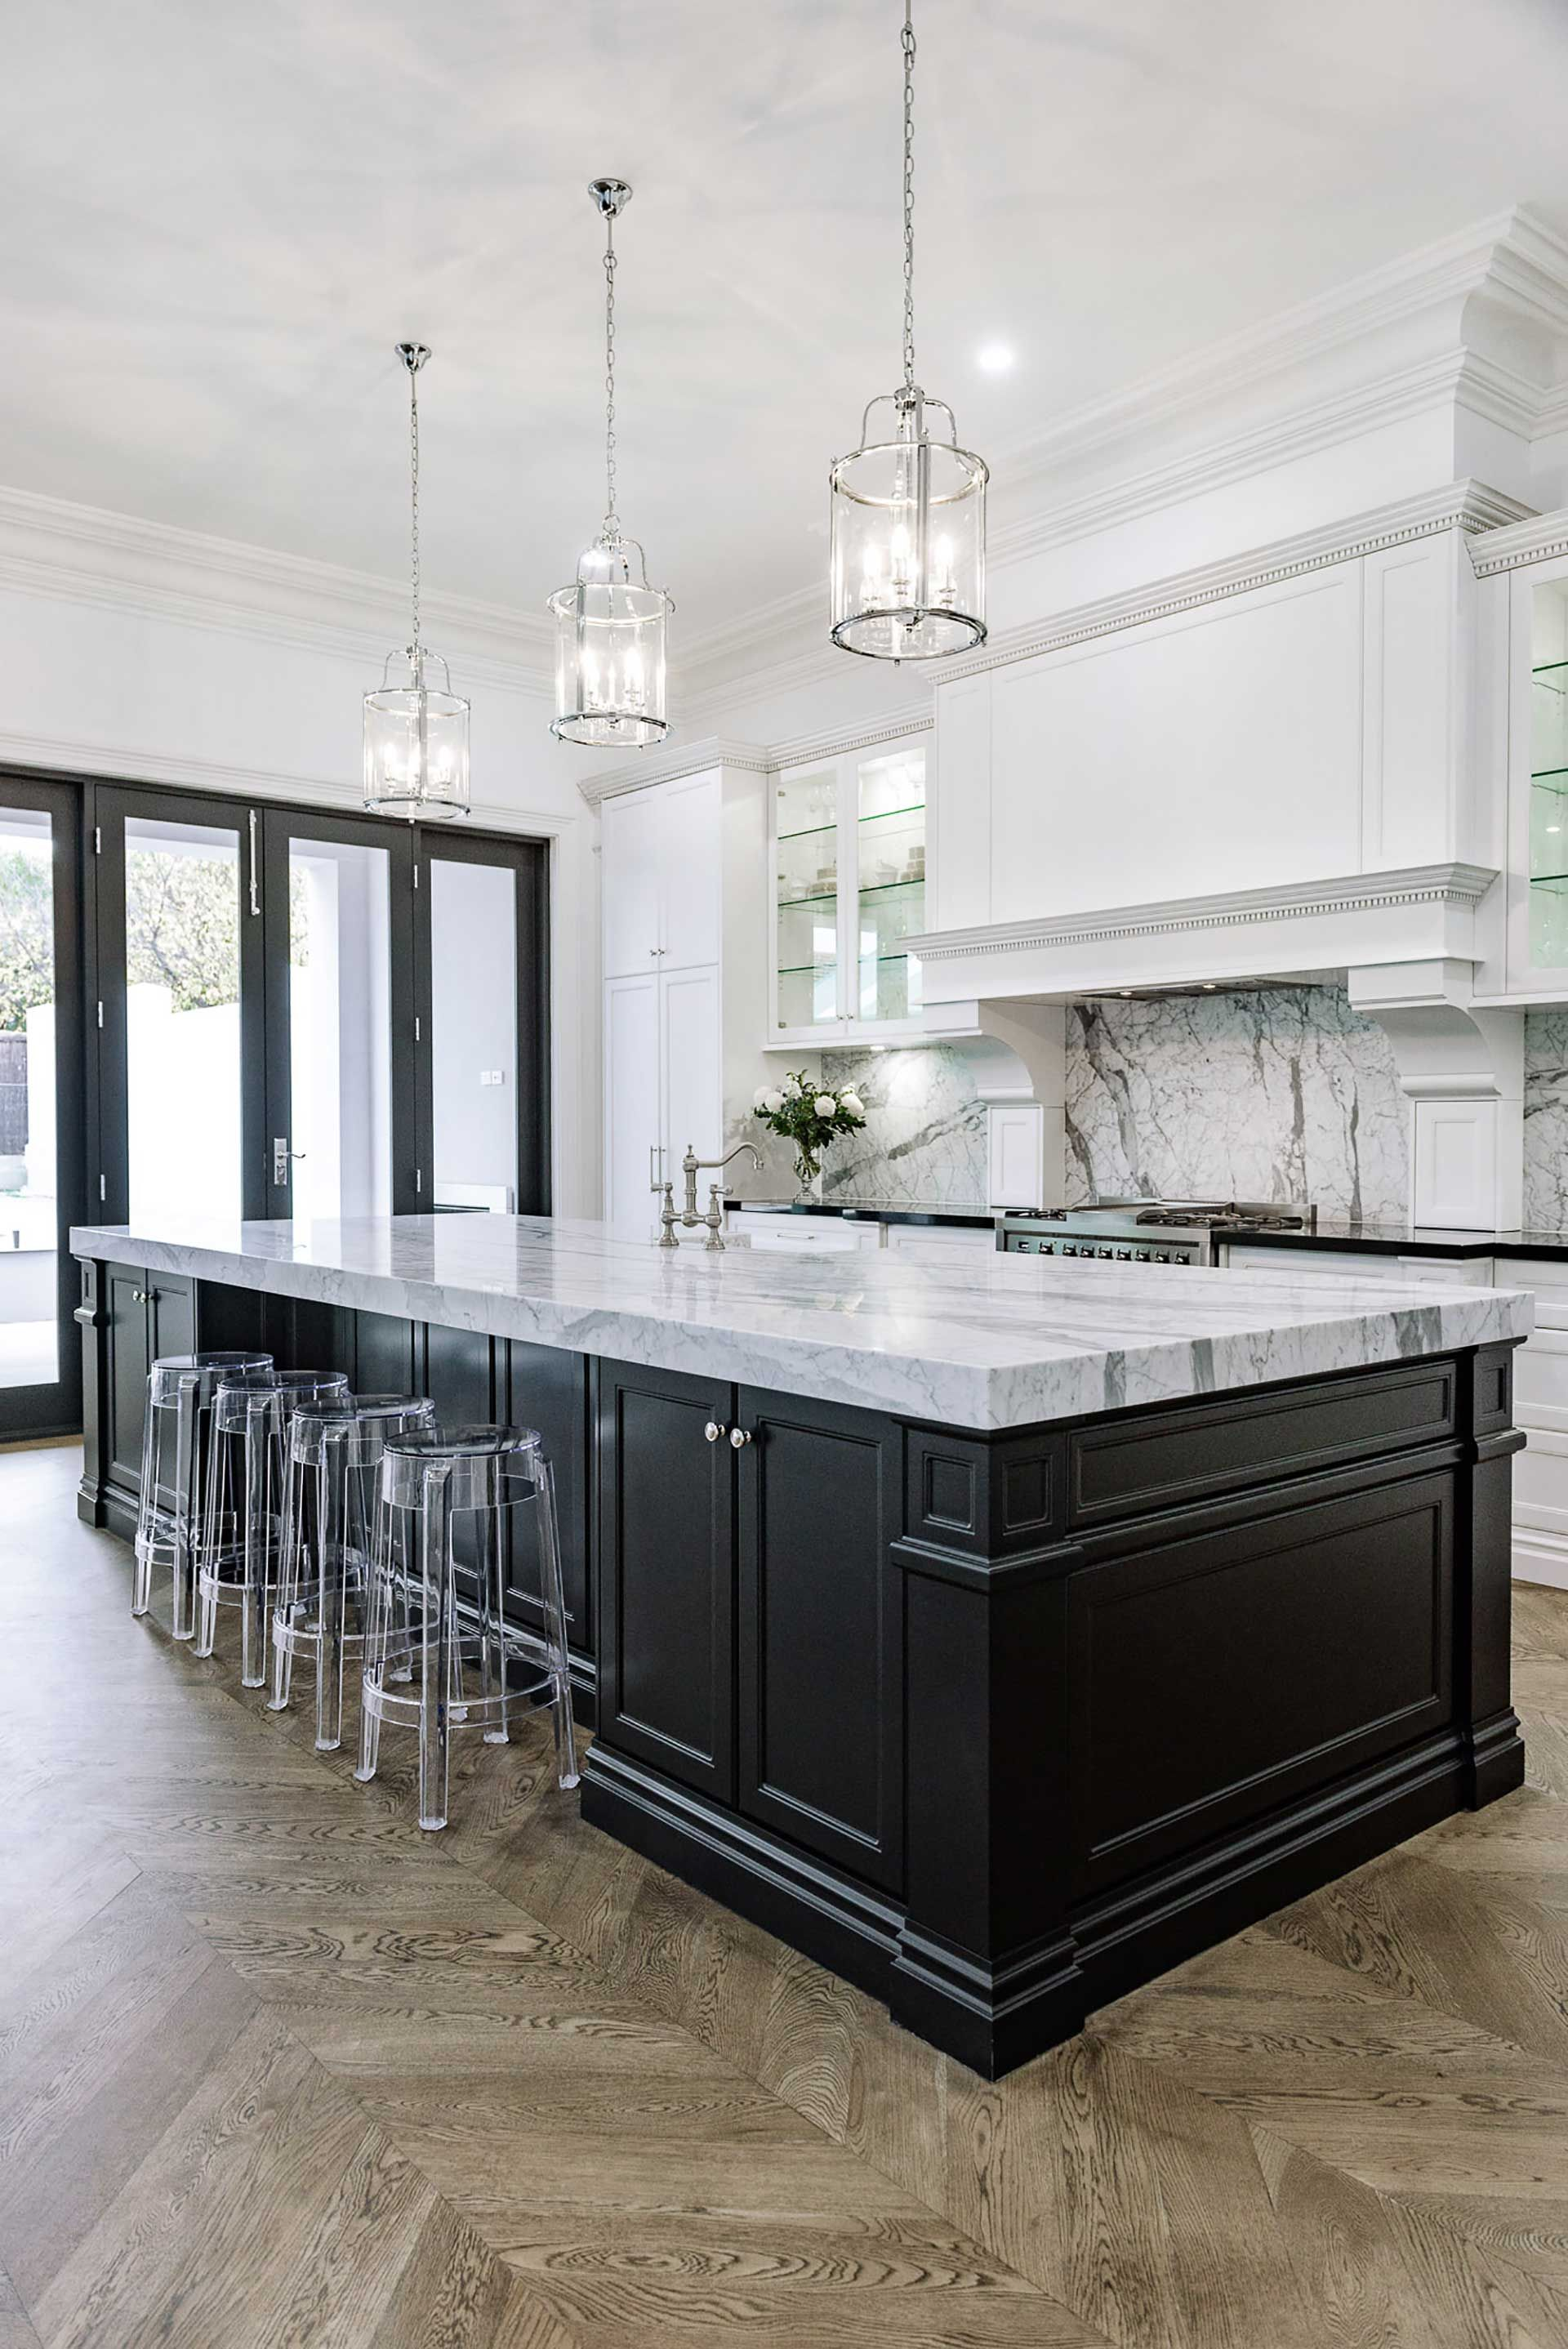 Classical Kitchens Kitchens Alby Turner Son Bespoke Cabinetry Classical